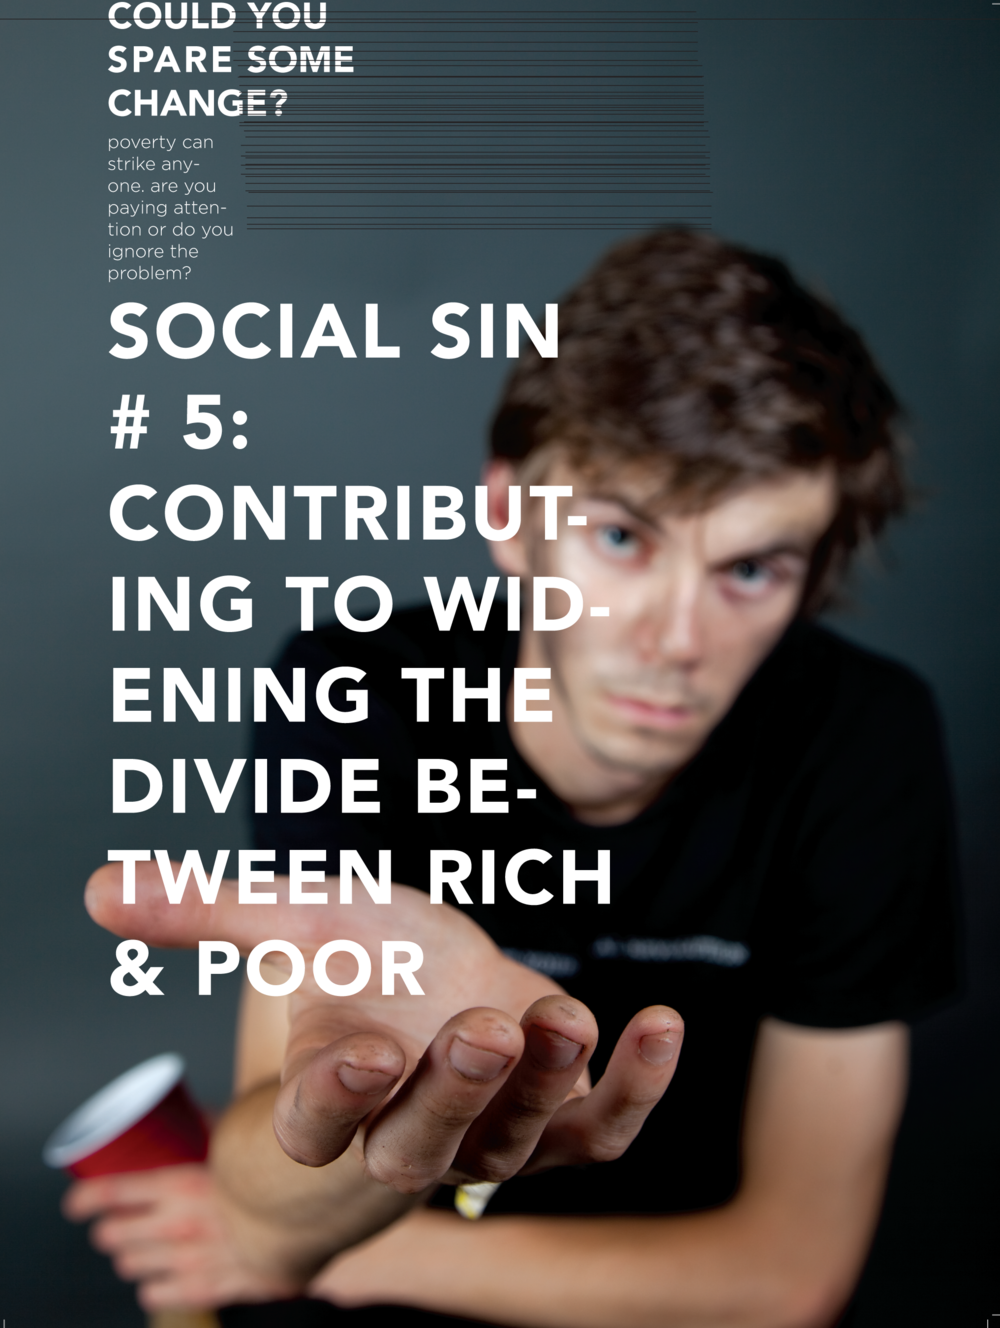 Social Sin #5 Contributing to Widening the Divide